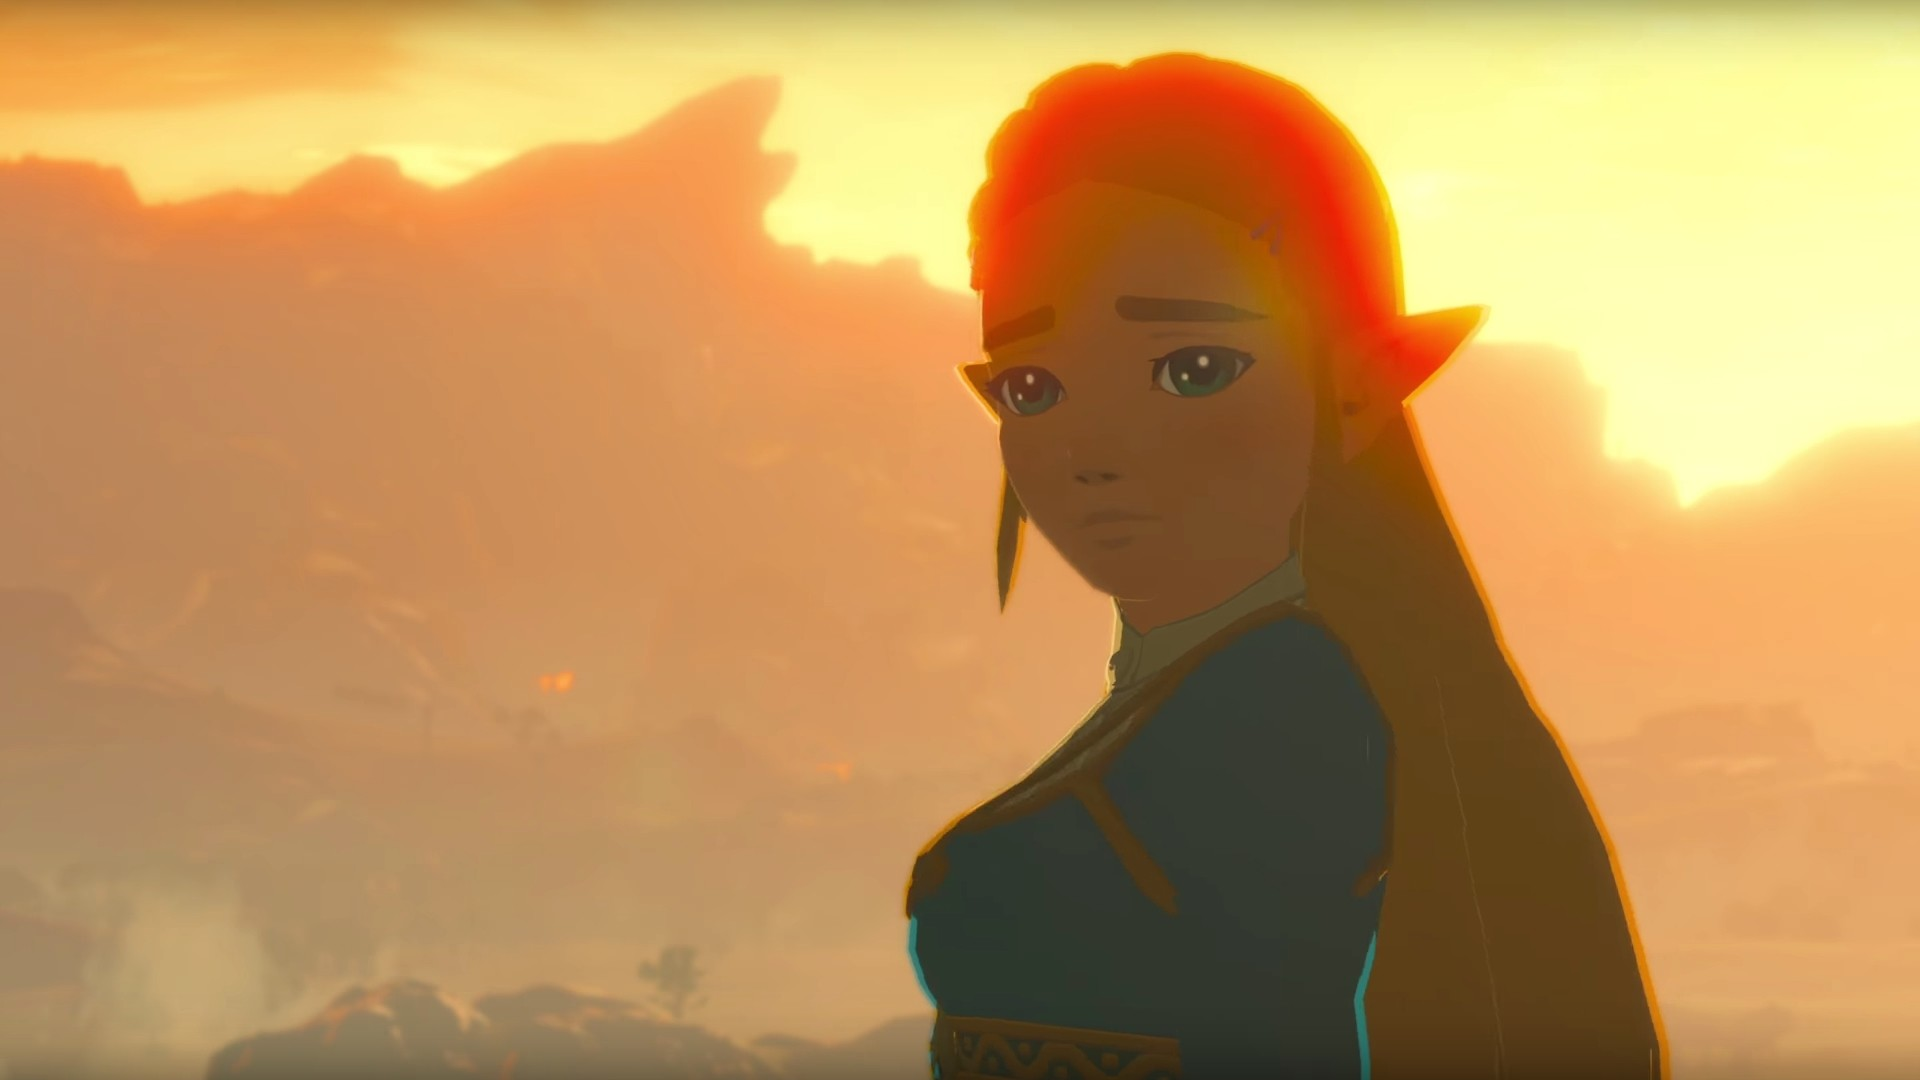 Fan ArtDIY – Zelda Breath of the Wild, Wallpapers from Switch Trailer (1080p)  – Gallery link in the comments.